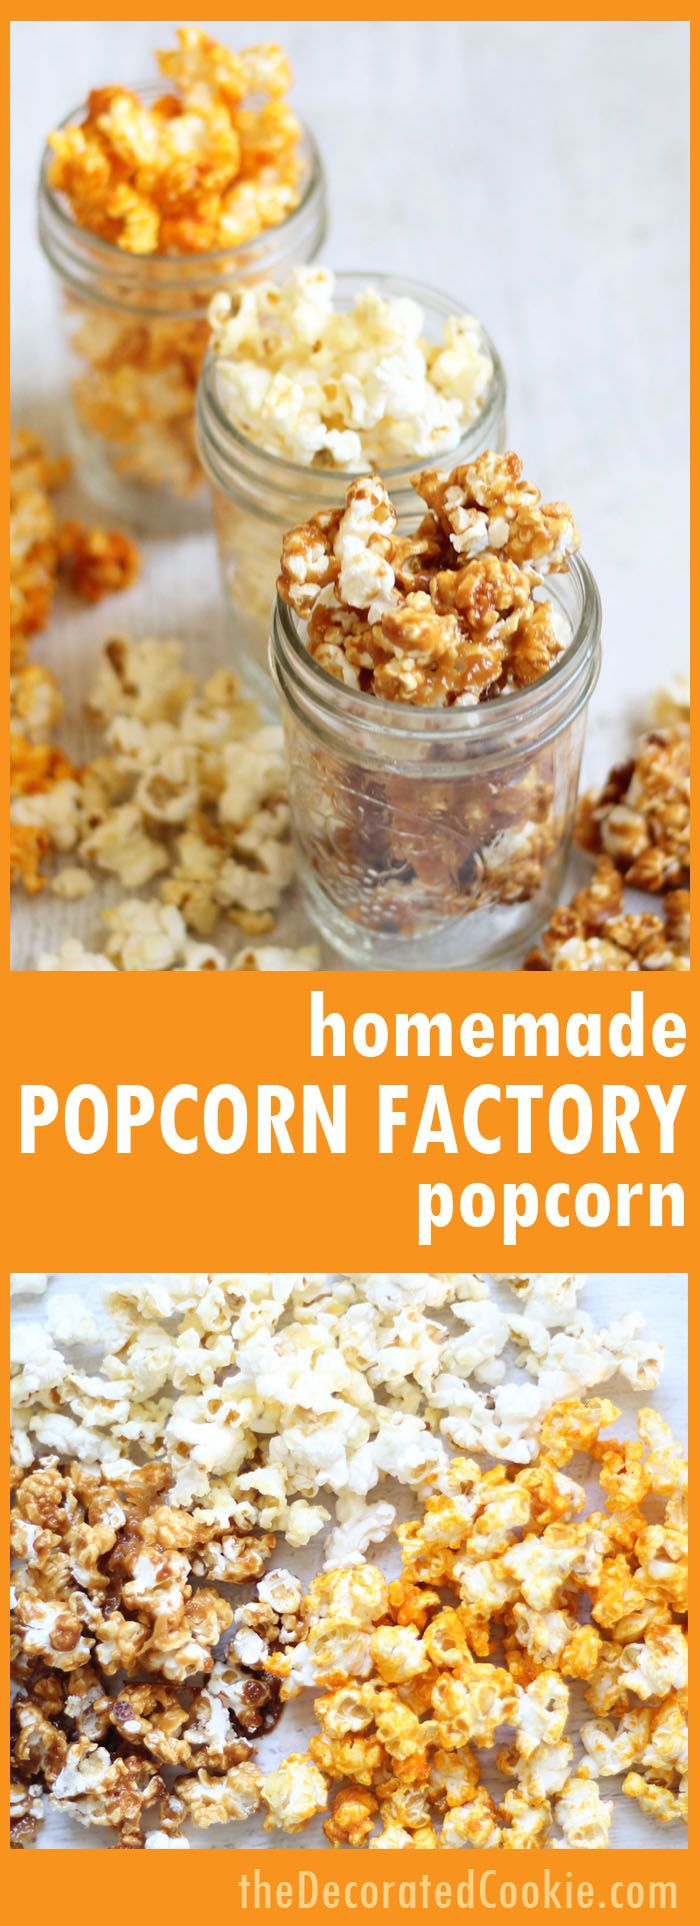 Homemade Popcorn Factory Popcorn! Make your own trio of popcorn flavors, buttered, caramel, and cheddar. Great homemade food gift idea.